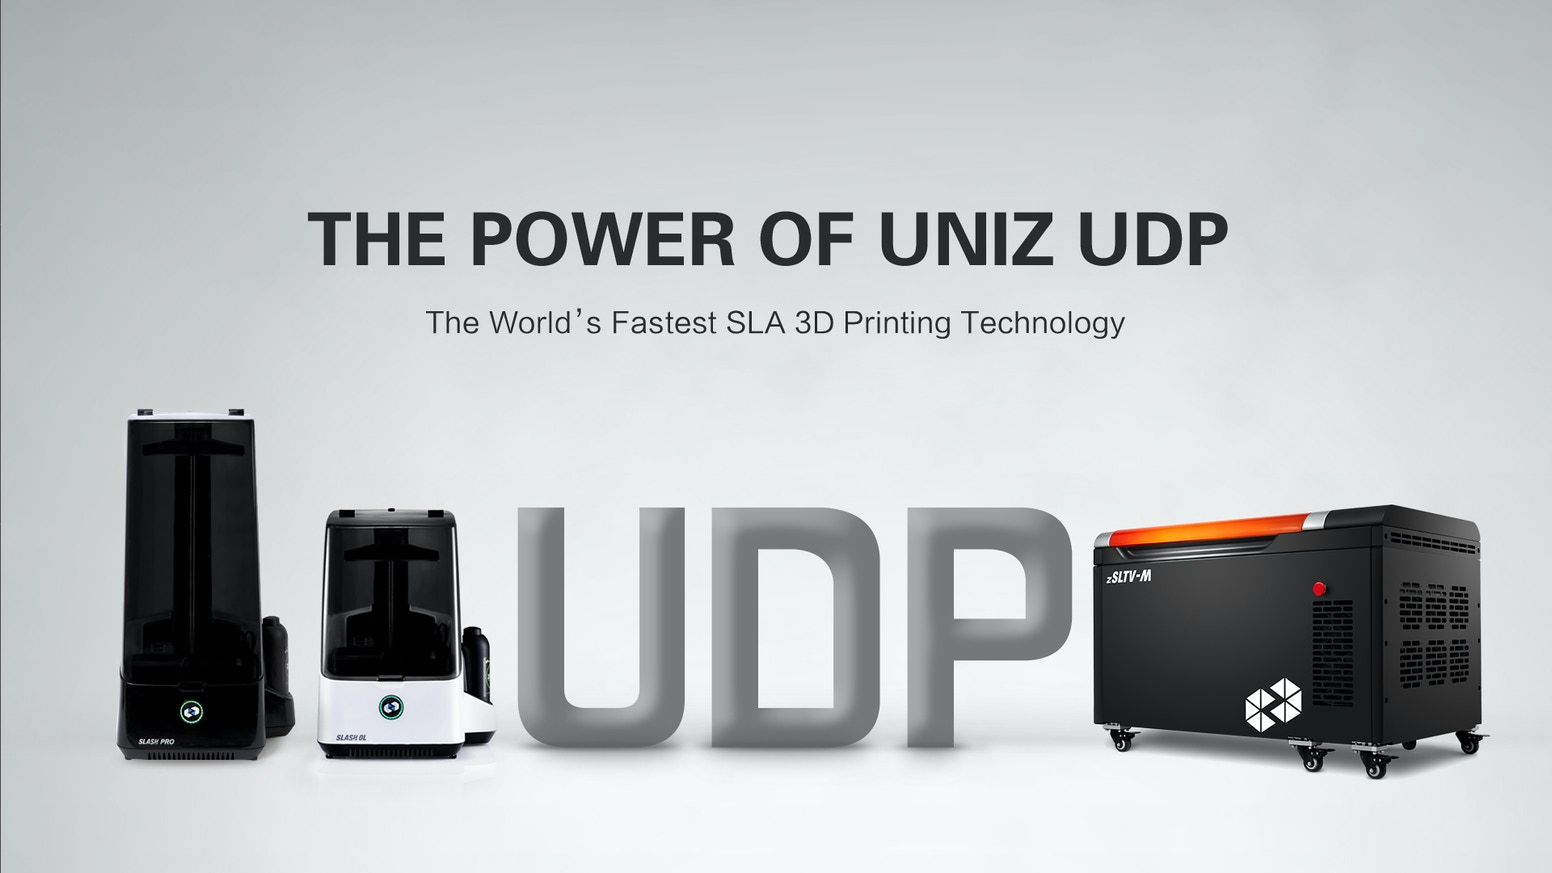 UNIZ-UDP: the World's Fastest 3D Printer Technology by Uniz